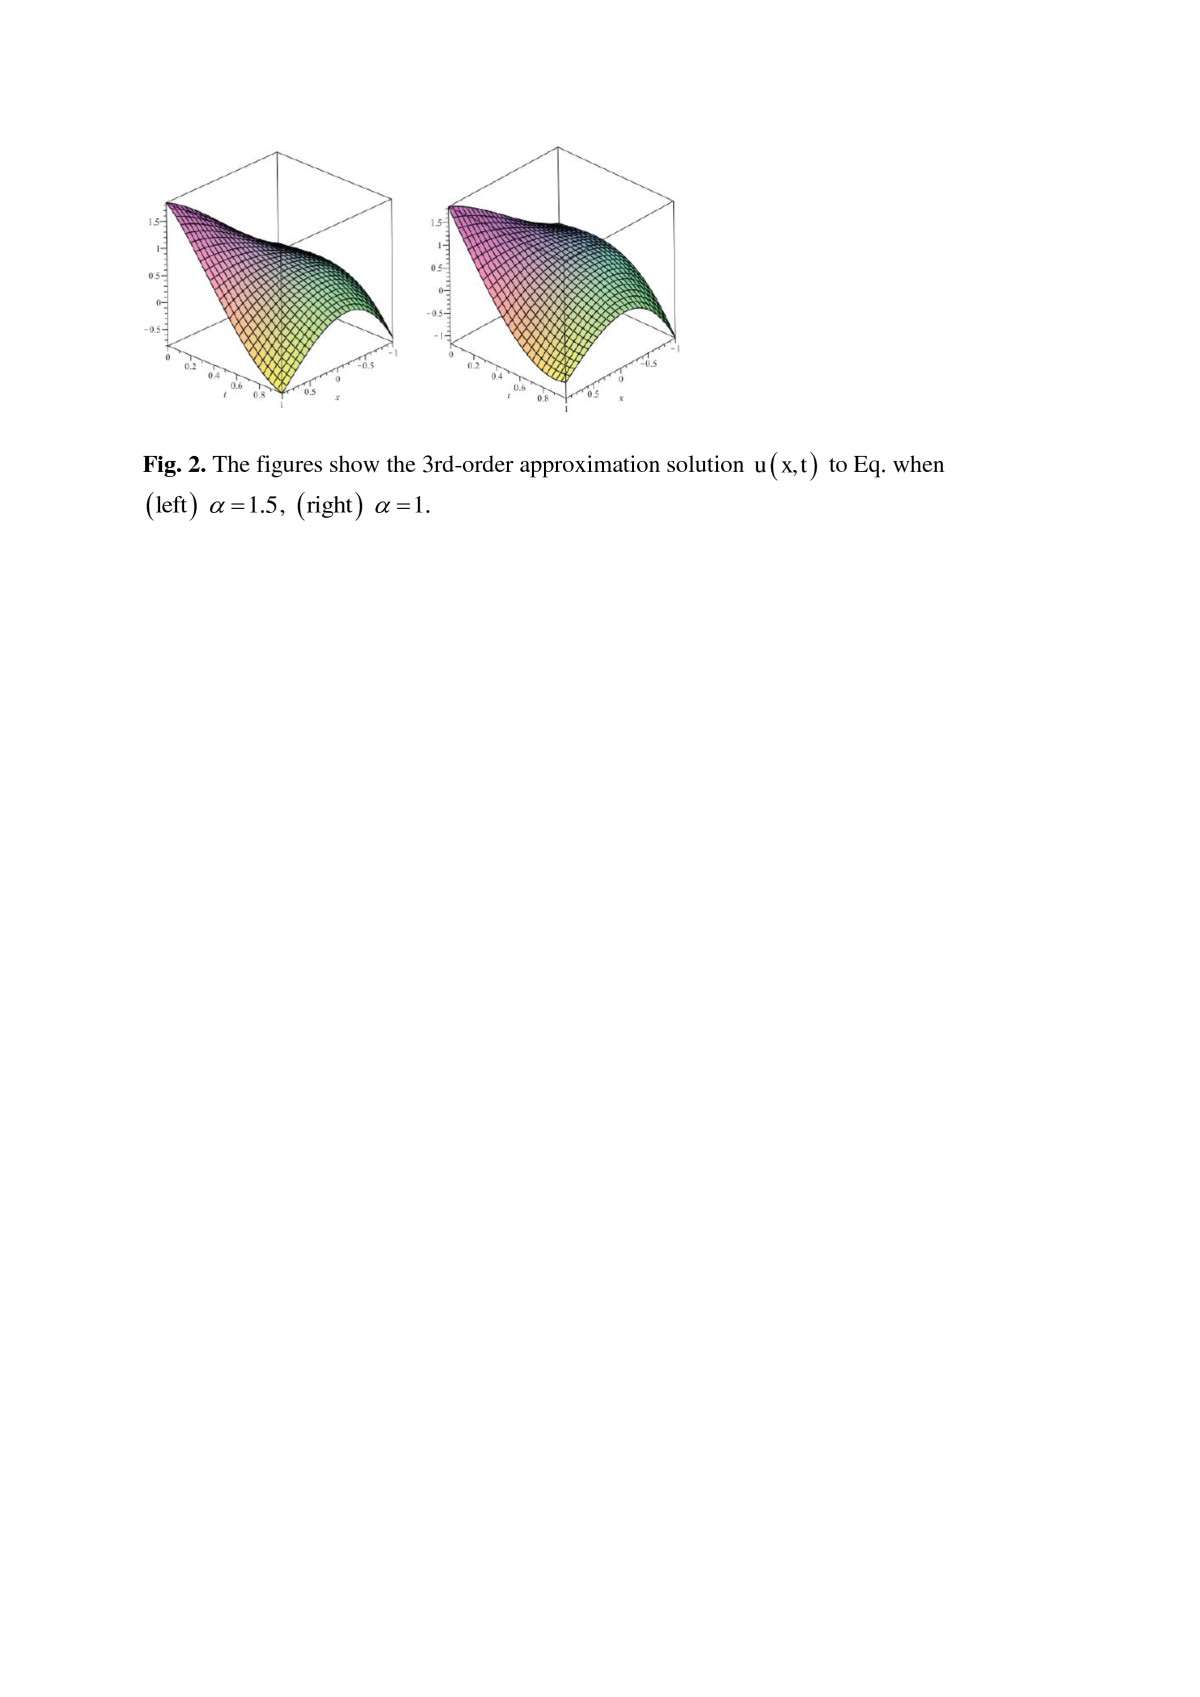 https://static-content.springer.com/image/art%3A10.1186%2F1687-1847-2012-187/MediaObjects/13662_2012_Article_306_Fig2_HTML.jpg